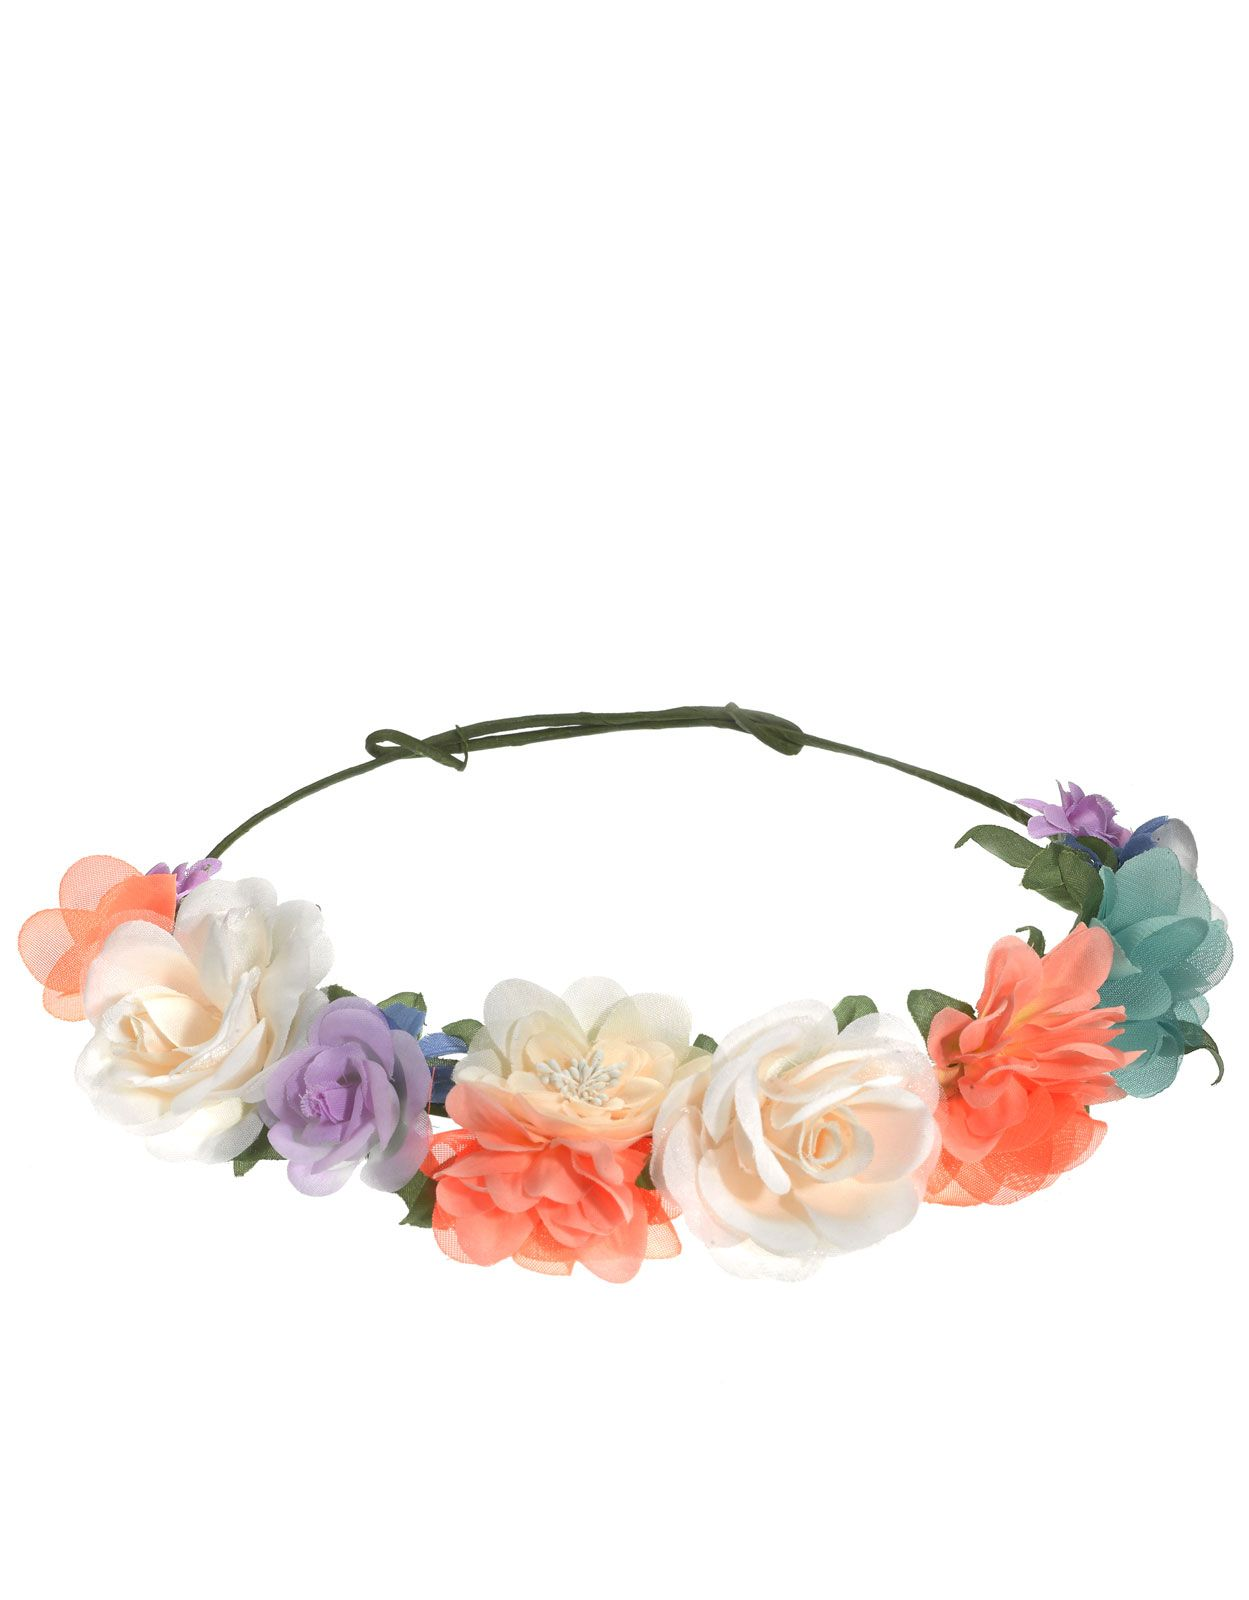 Neon And Pastel Flower Crown Multi Accessorize On My Head